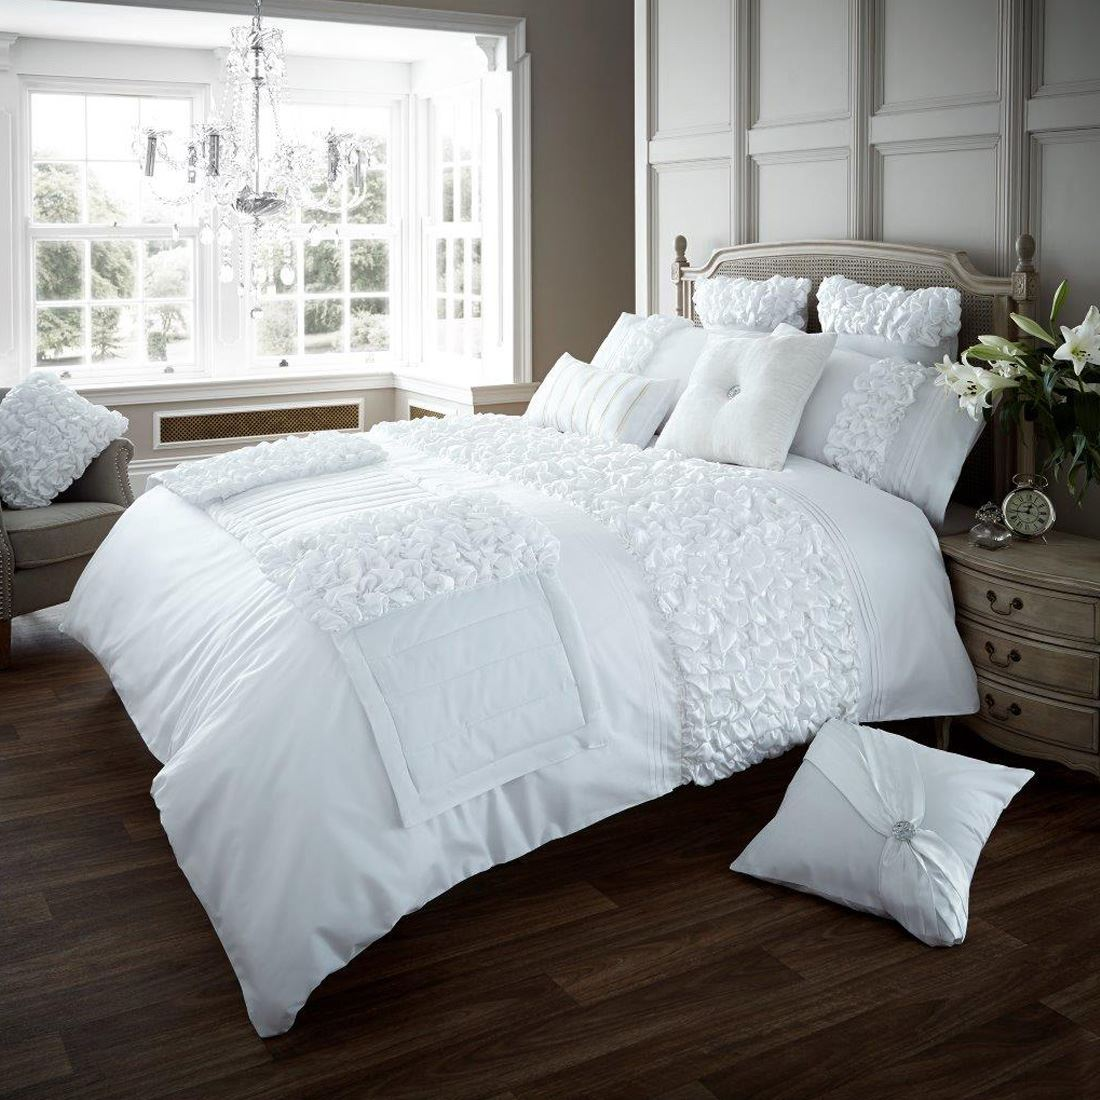 King Bed Duvet Cover Verina Duvet Cover With Pillowcase Quilt Cover Bed Set